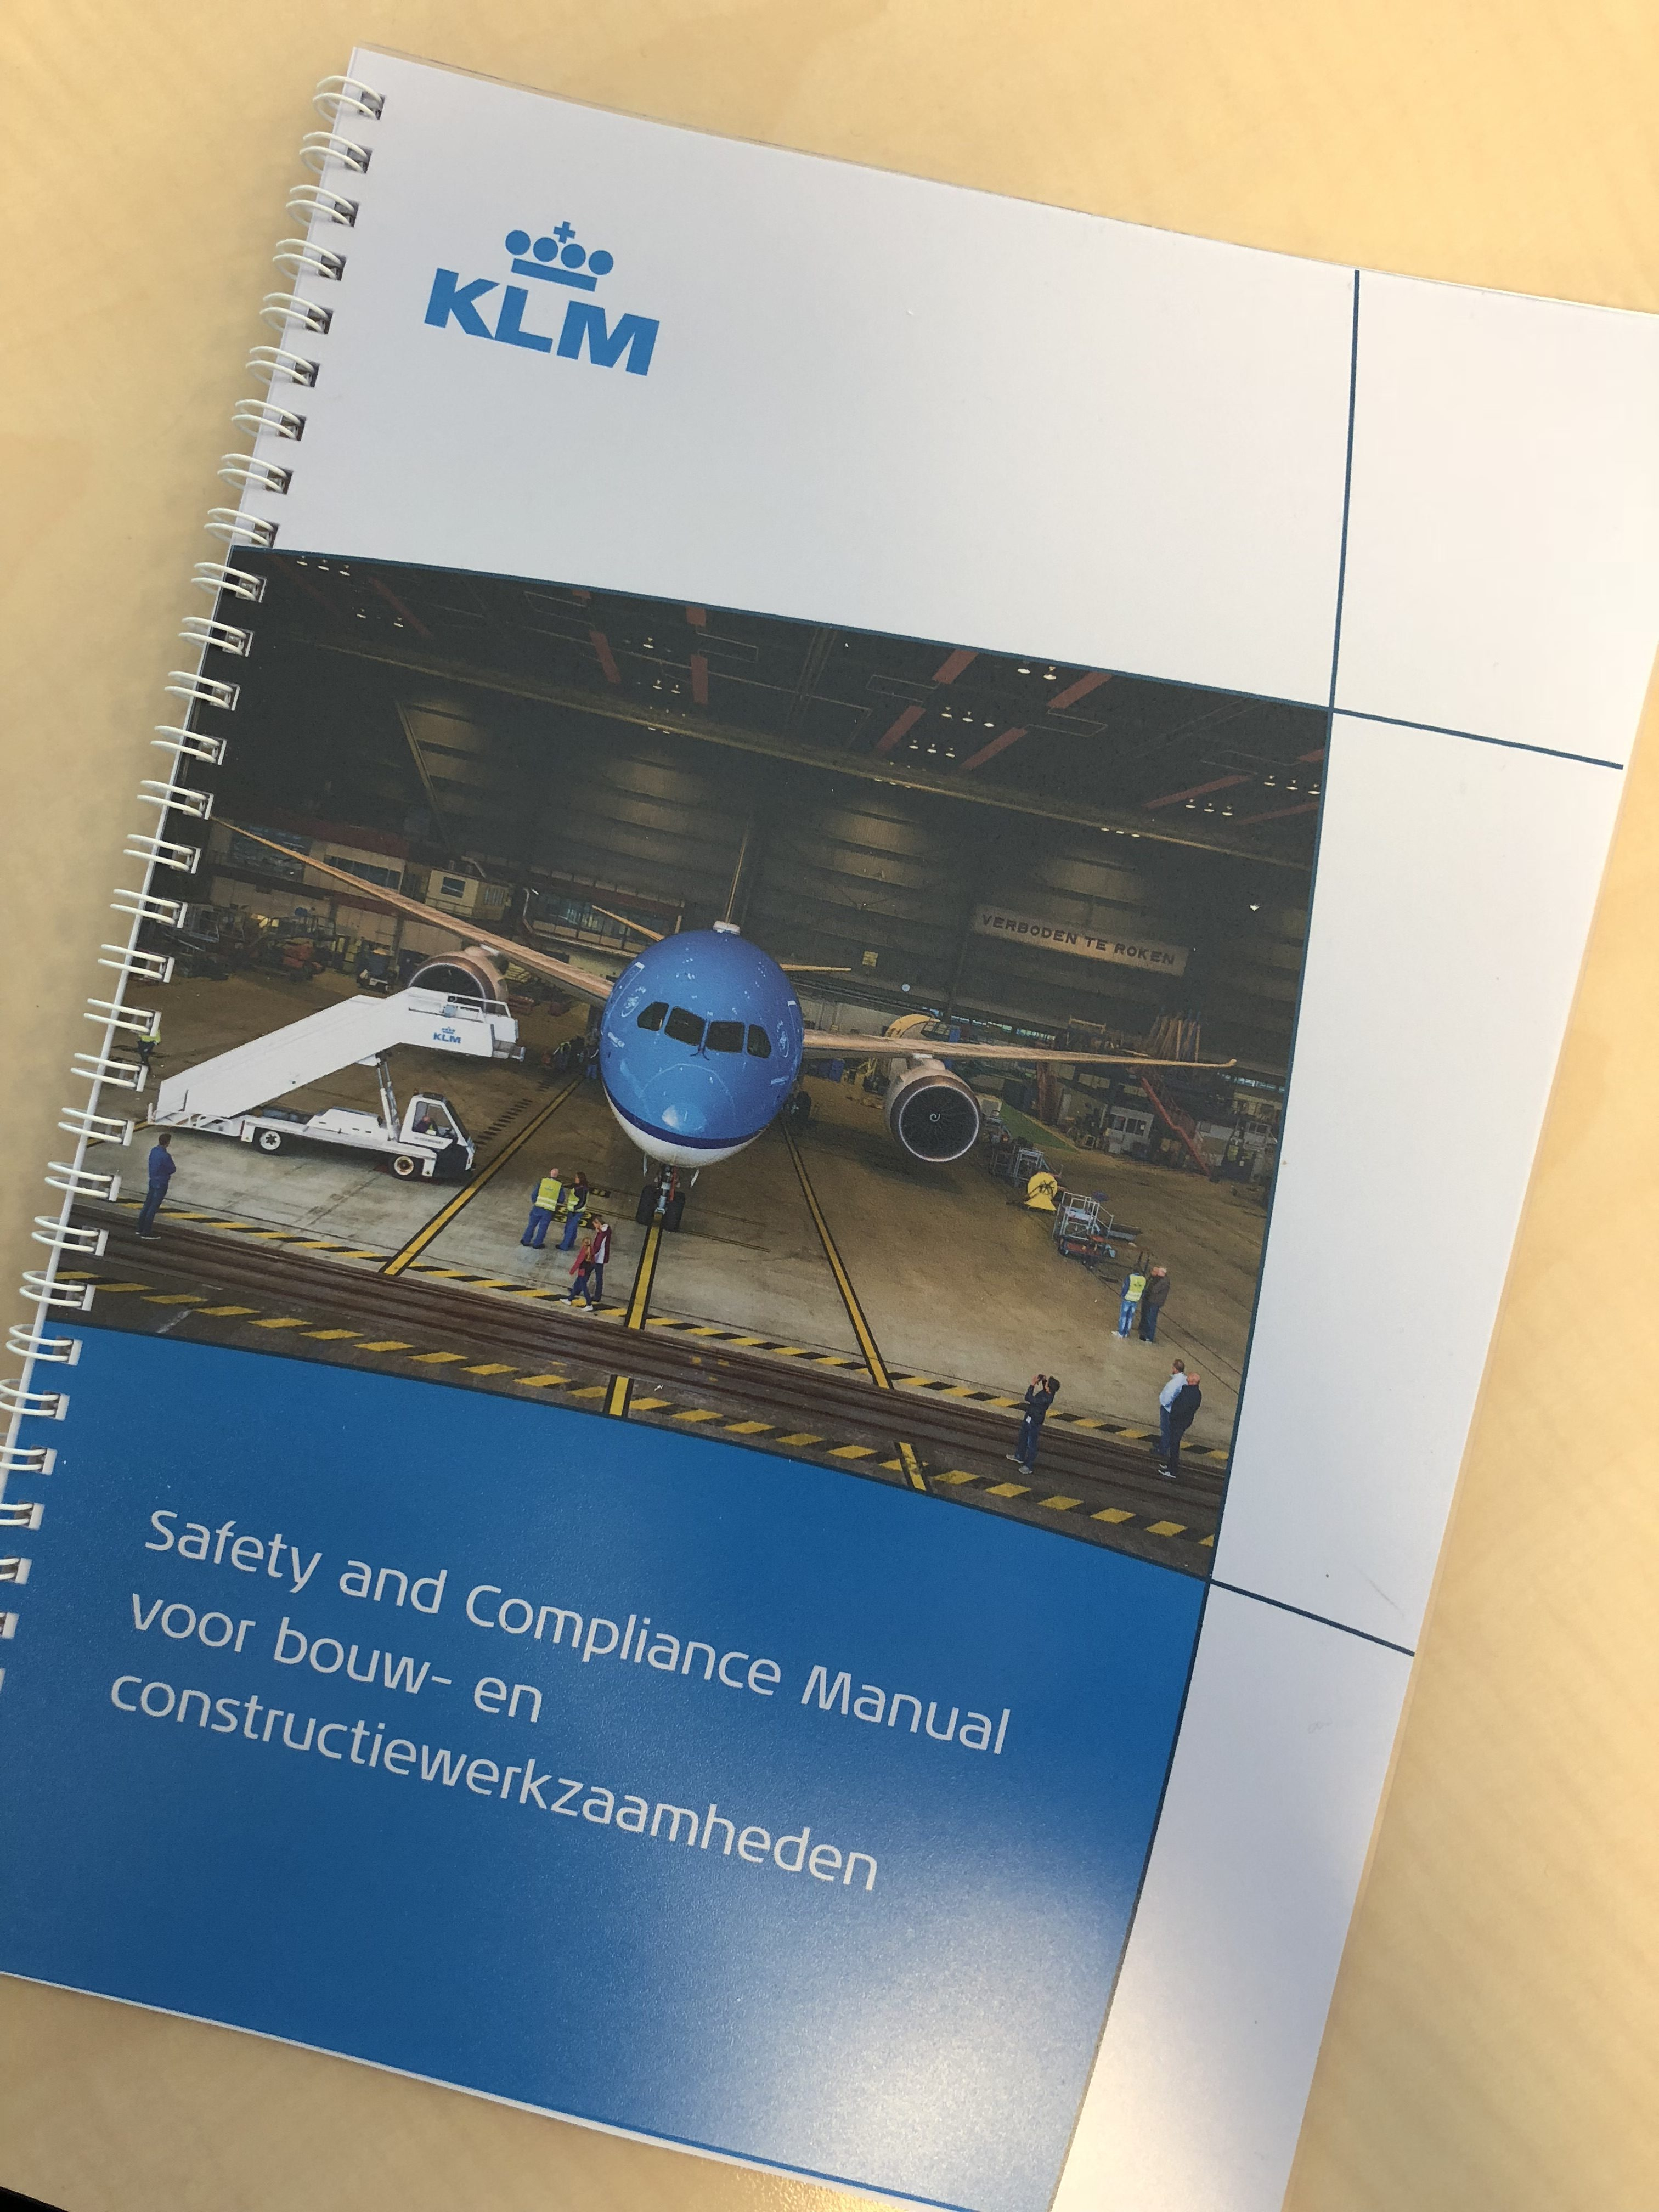 KLM Safety & Compliance Manual